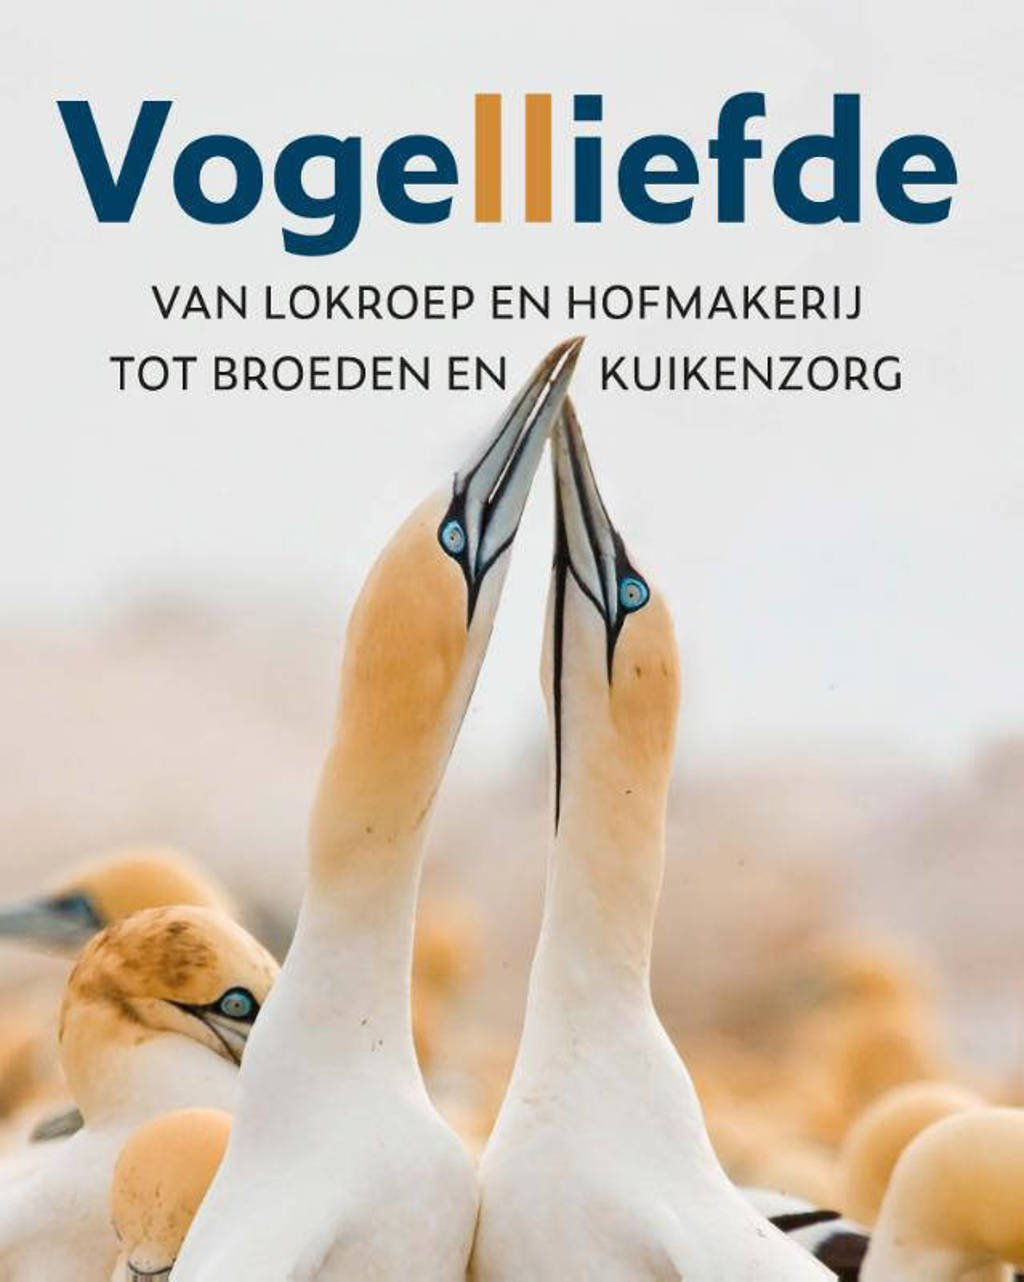 Vogelliefde - Mike Webster en Wenfei Tong